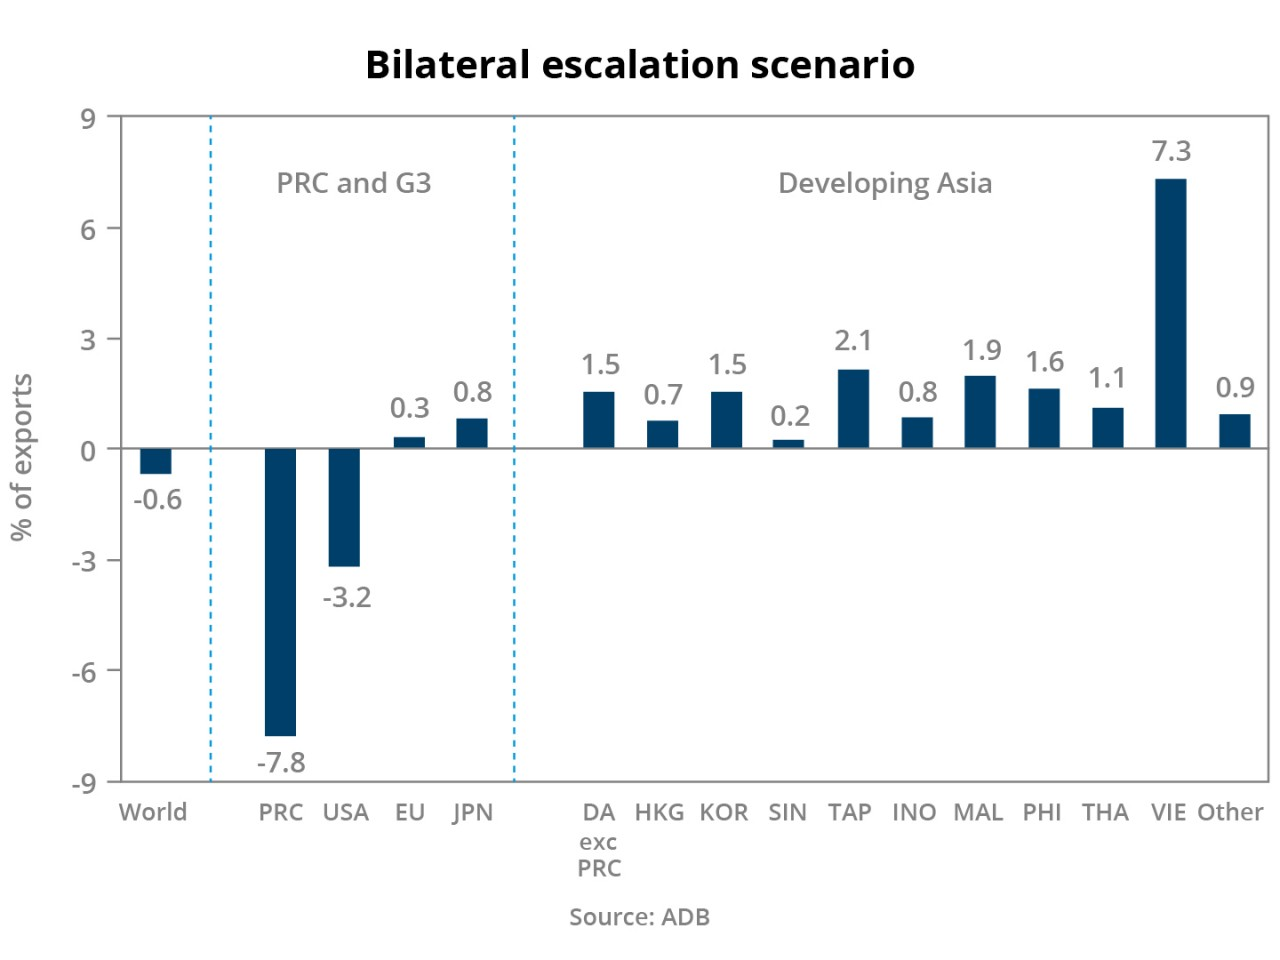 Figure 5: Bilateral escalation scenario